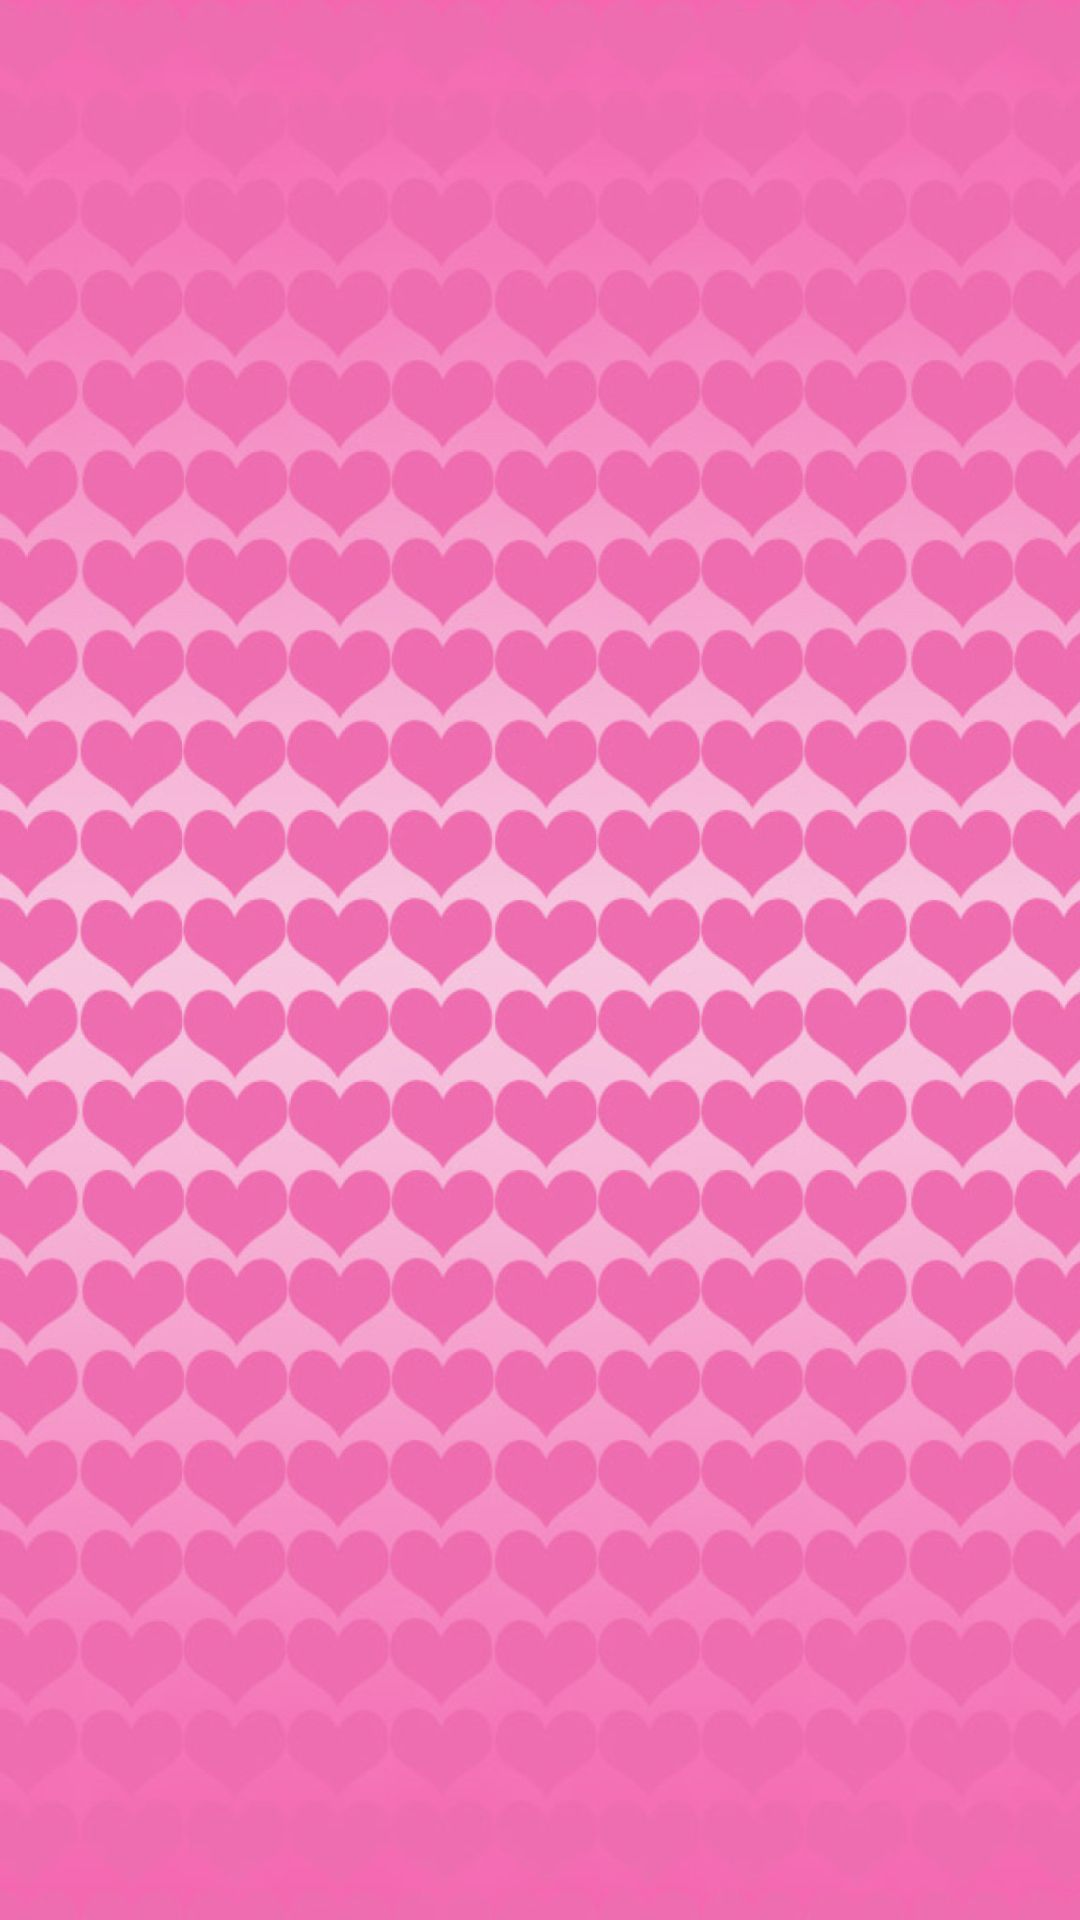 Cute Pink Designs Hearts Wallpaper For Iphone Plus